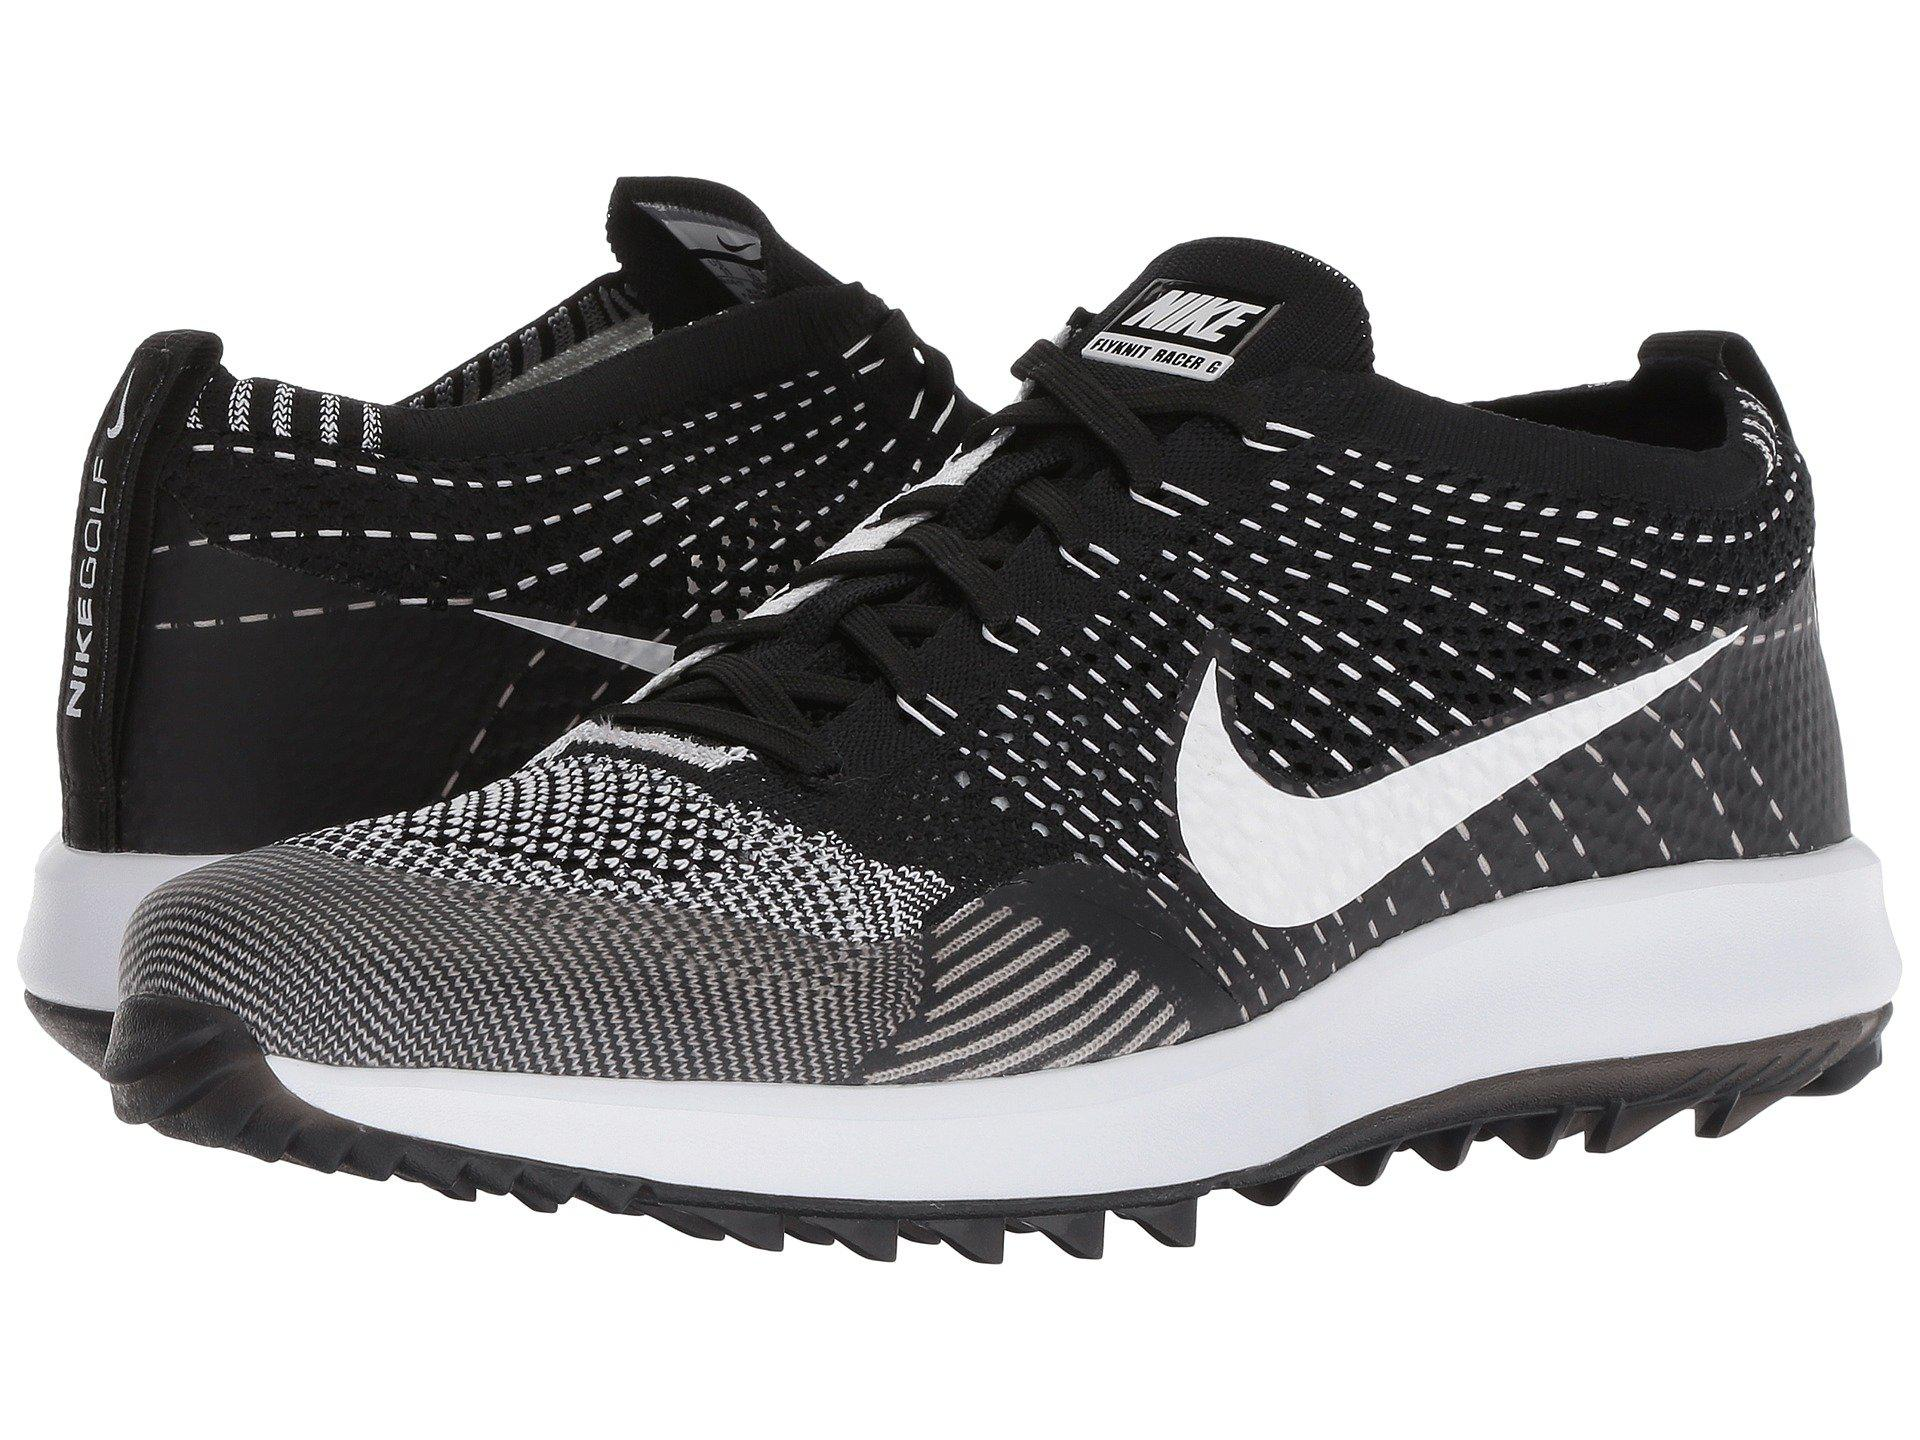 c4dea2296c00 promo code for nike flyknit racer all black black and white cd3a6 6bbea